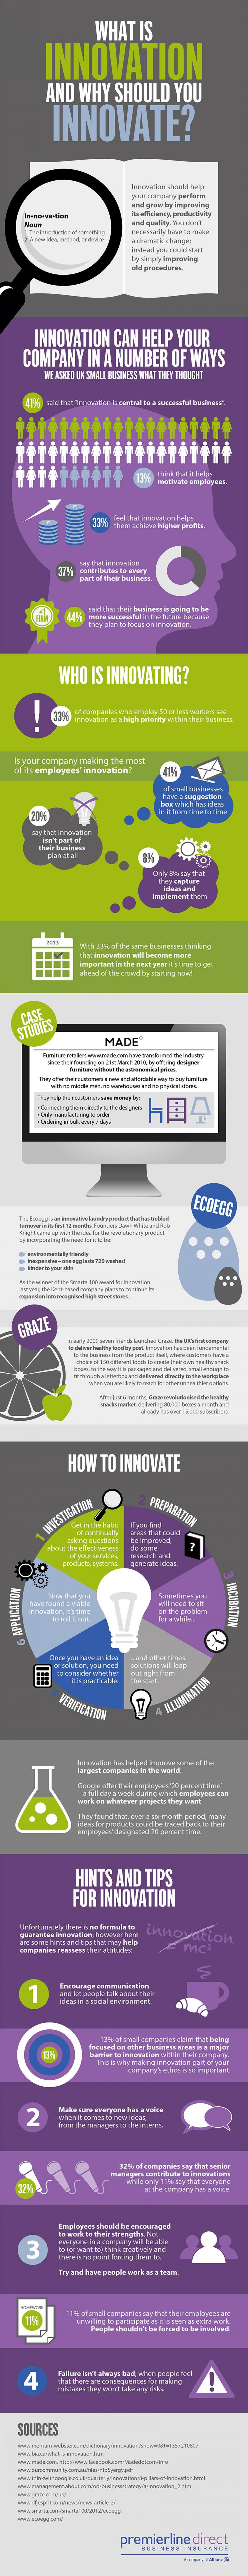 Innovation for Small Businesses  Infographic